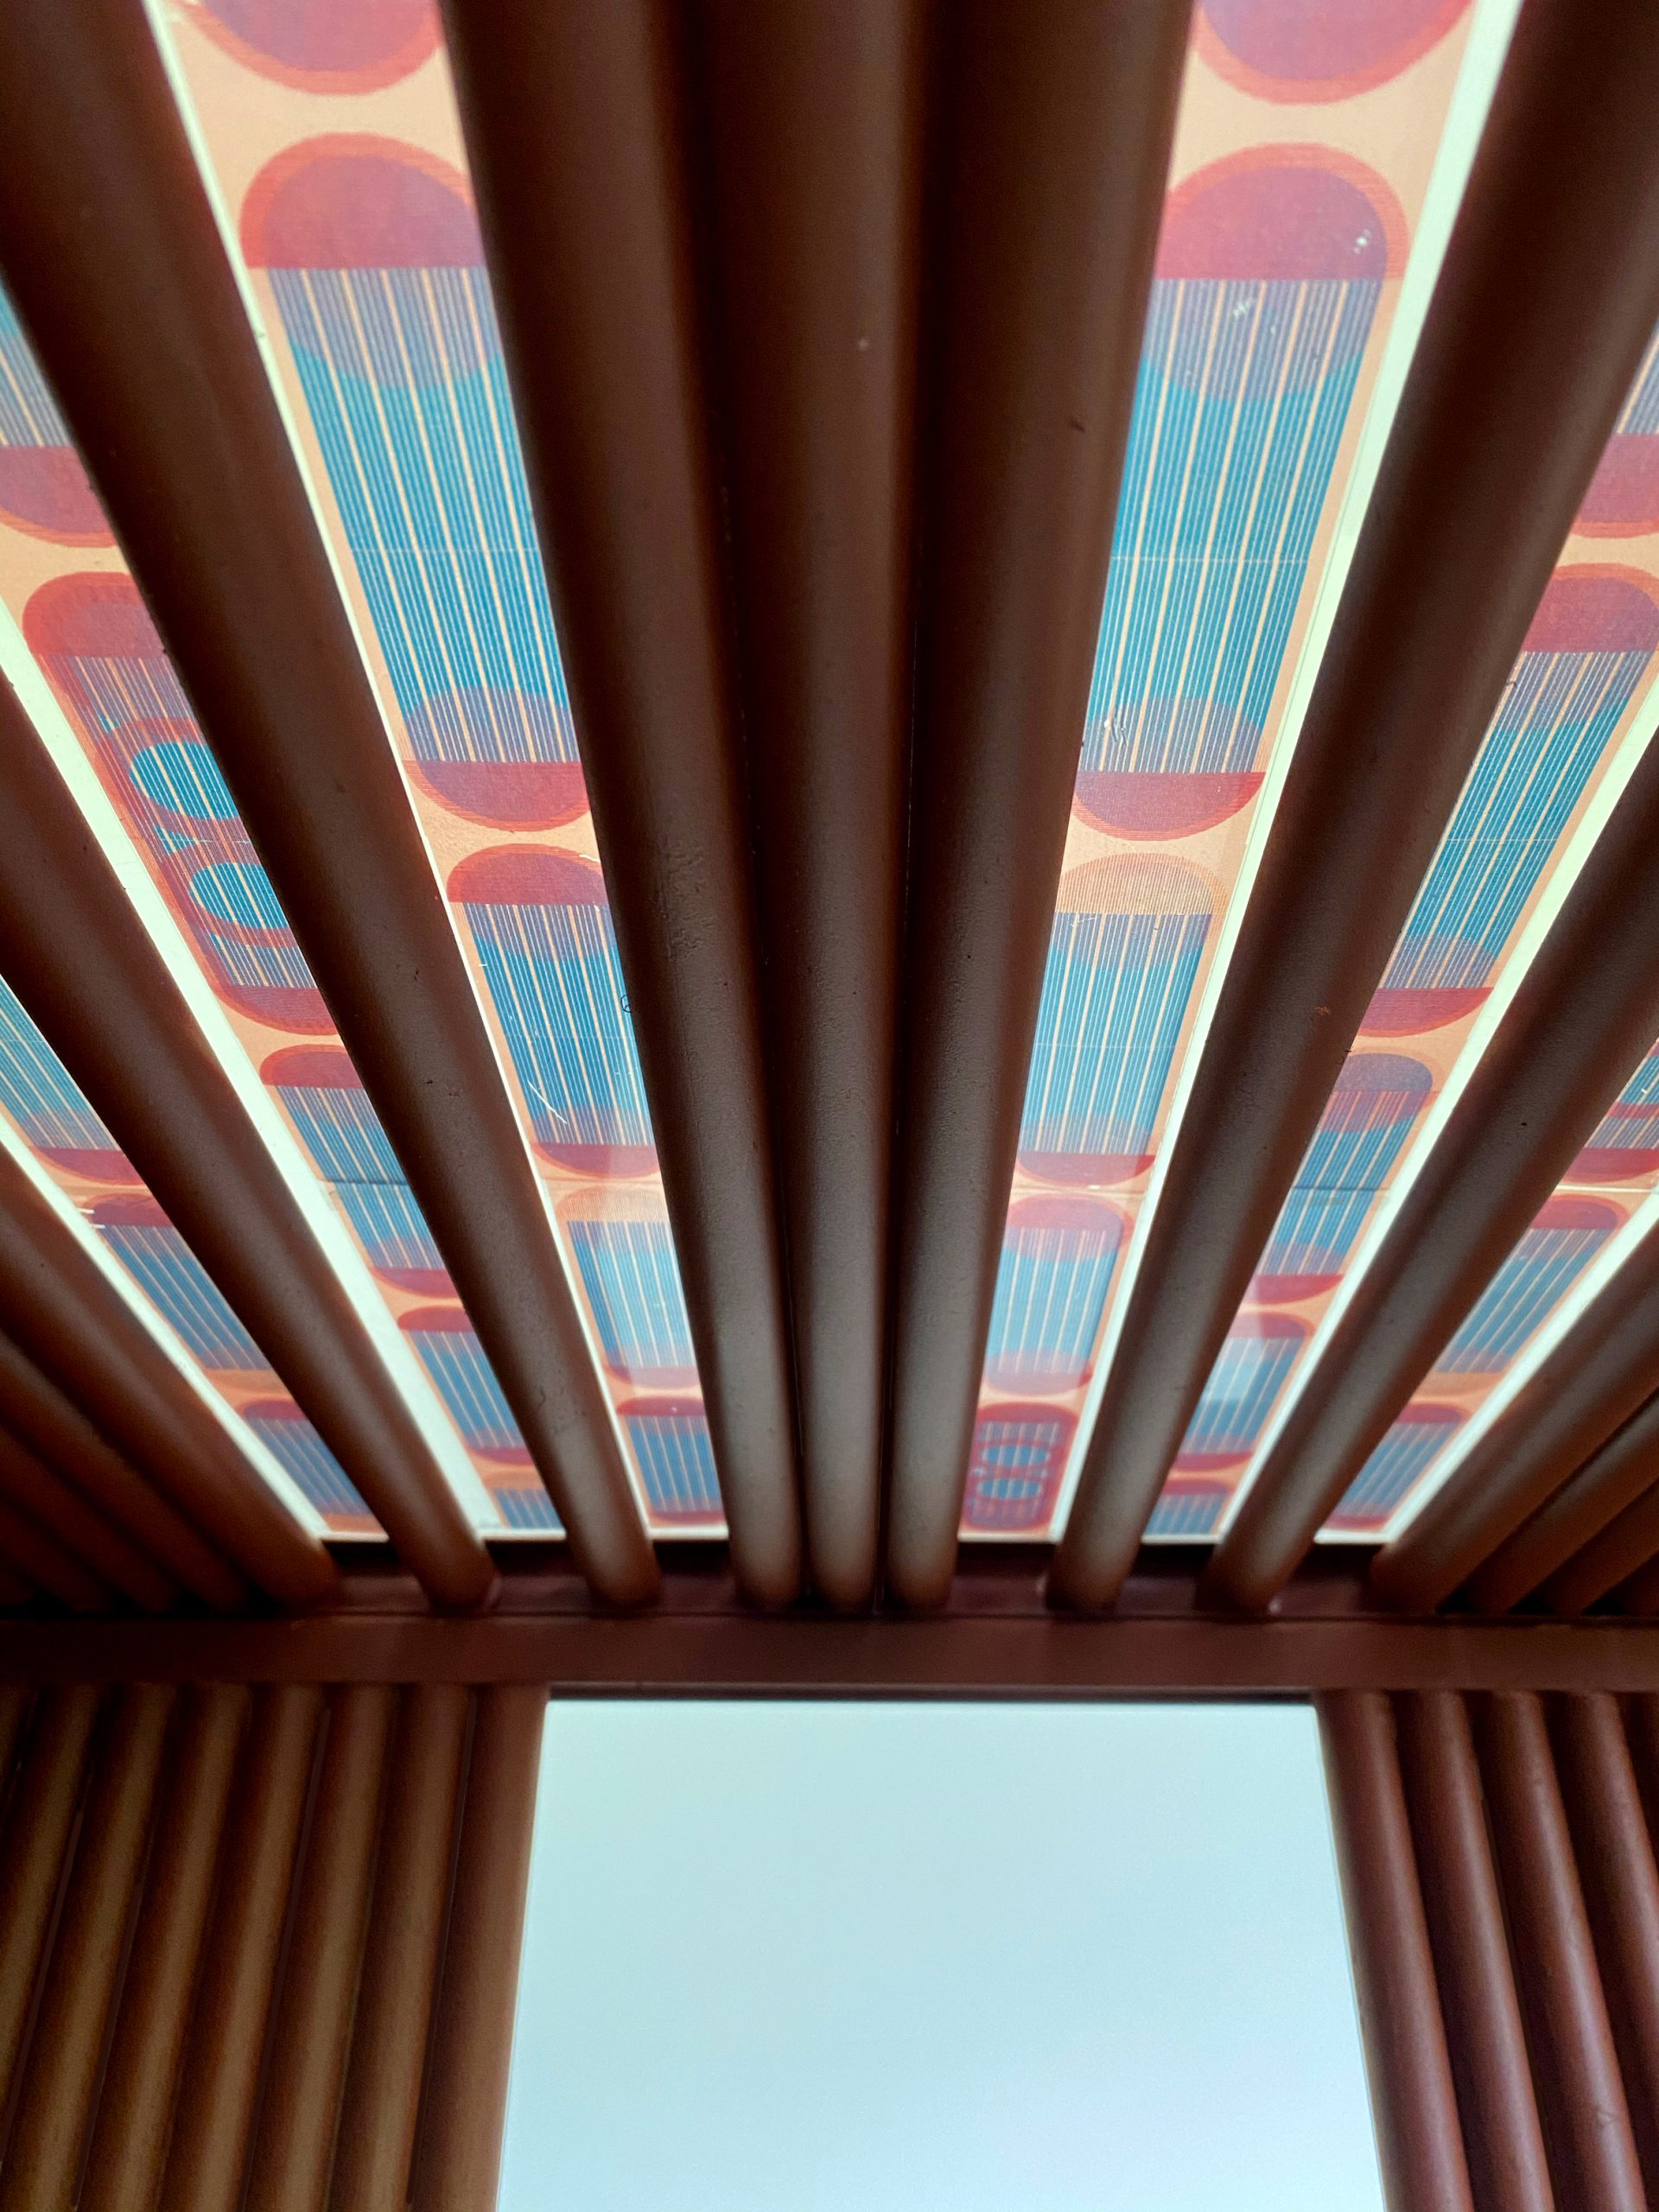 Colourful translucent solar panels by Marjan van Aubel will top Dutch pavilion at Dubai Expo